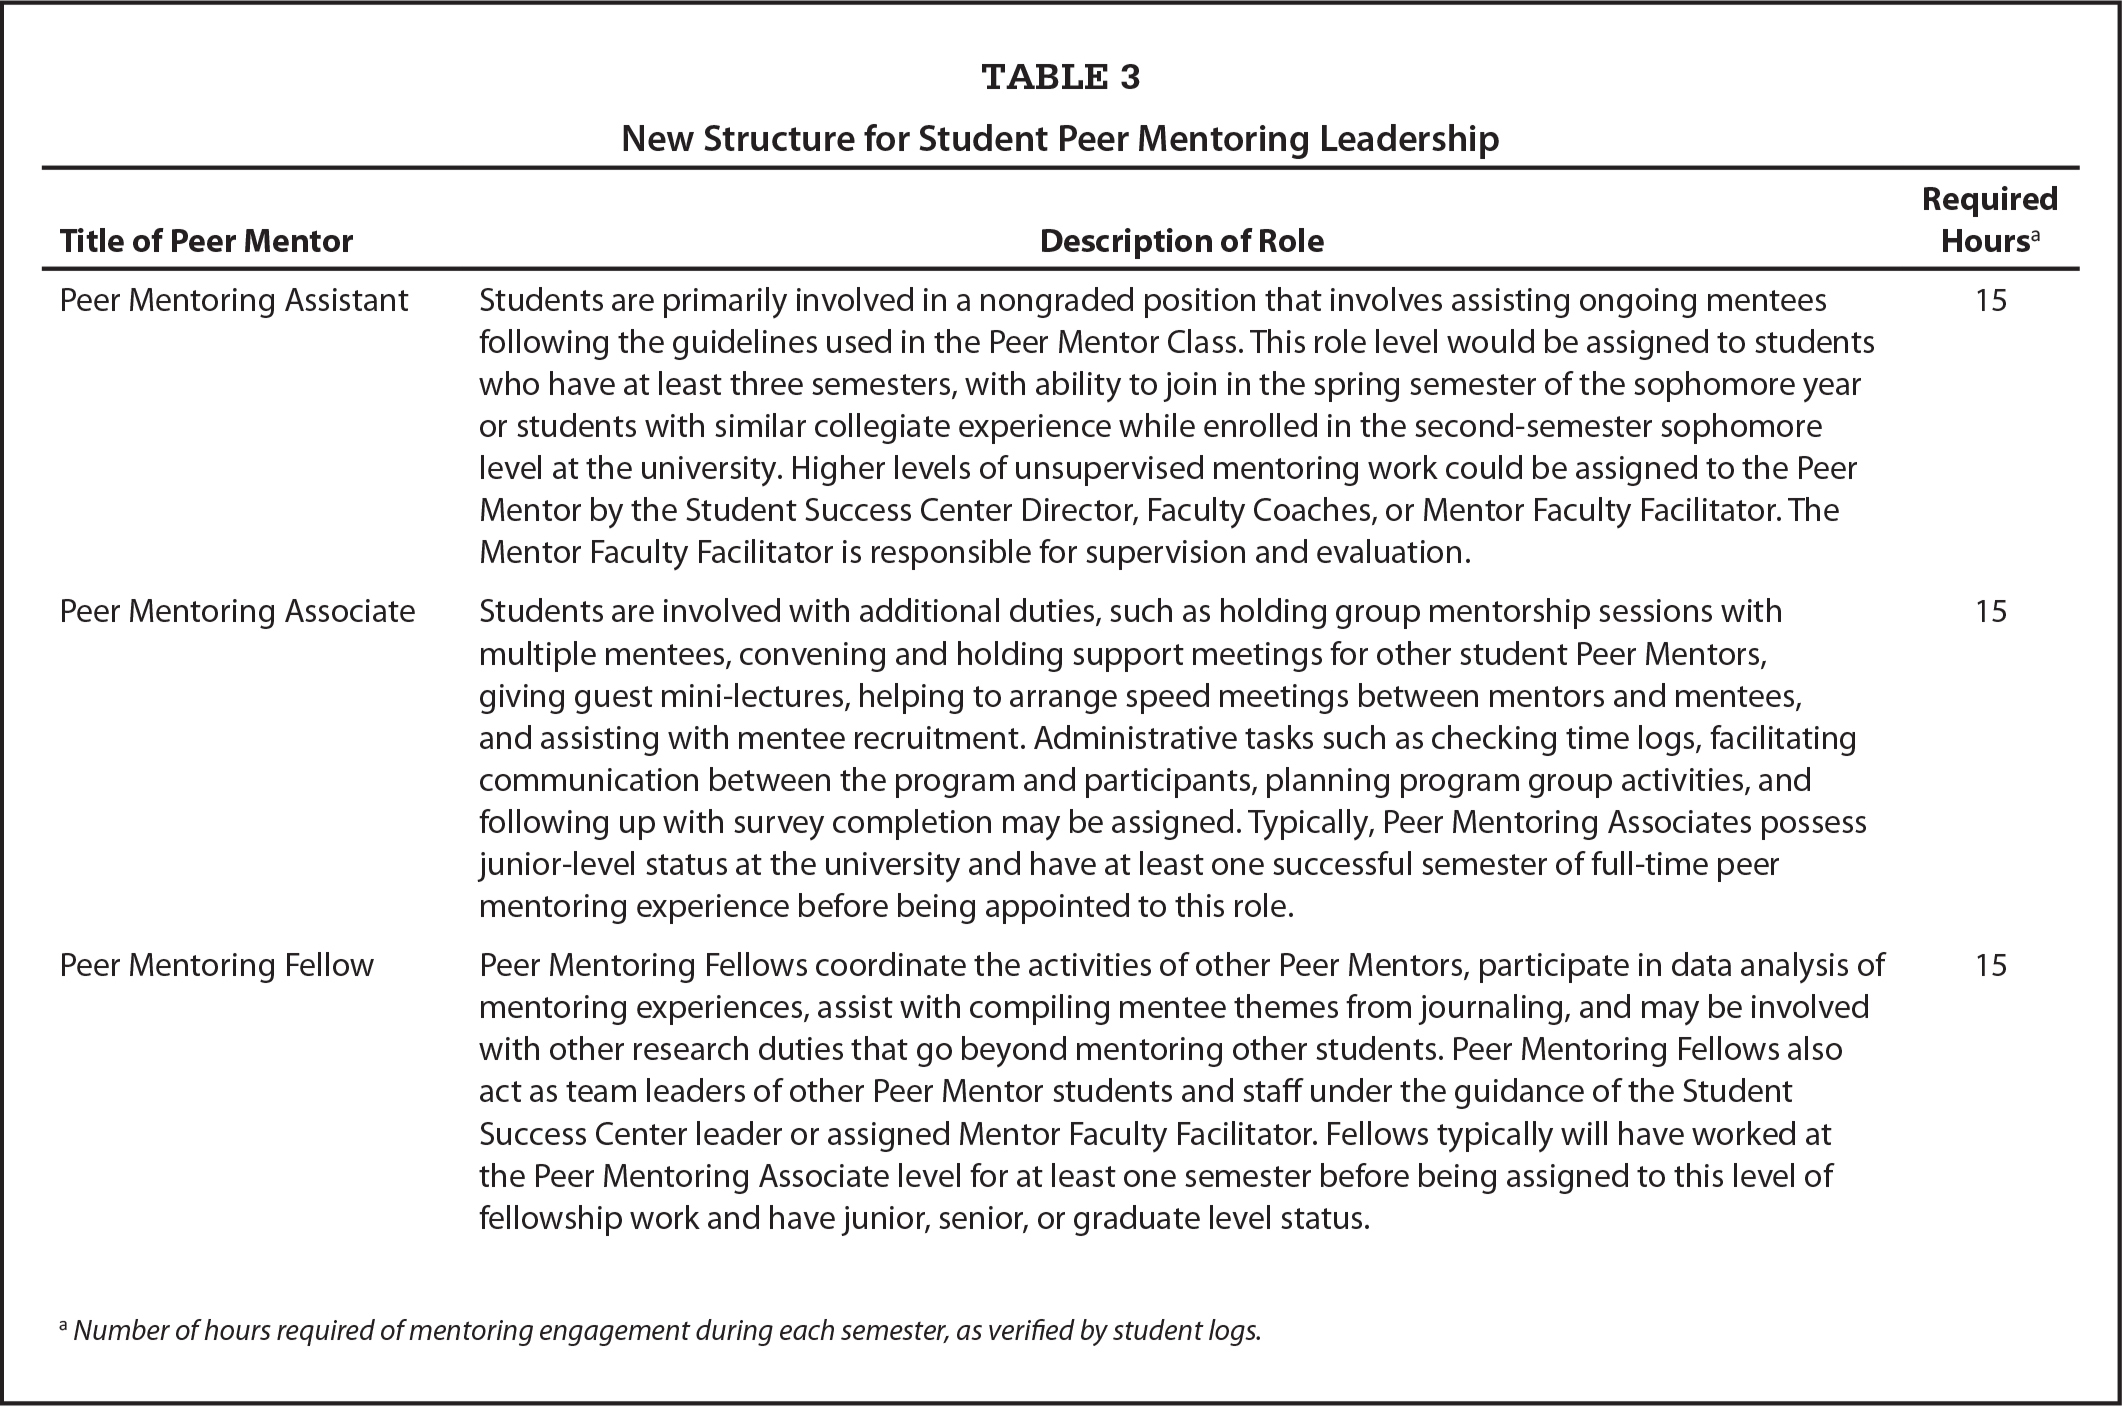 New Structure for Student Peer Mentoring Leadership